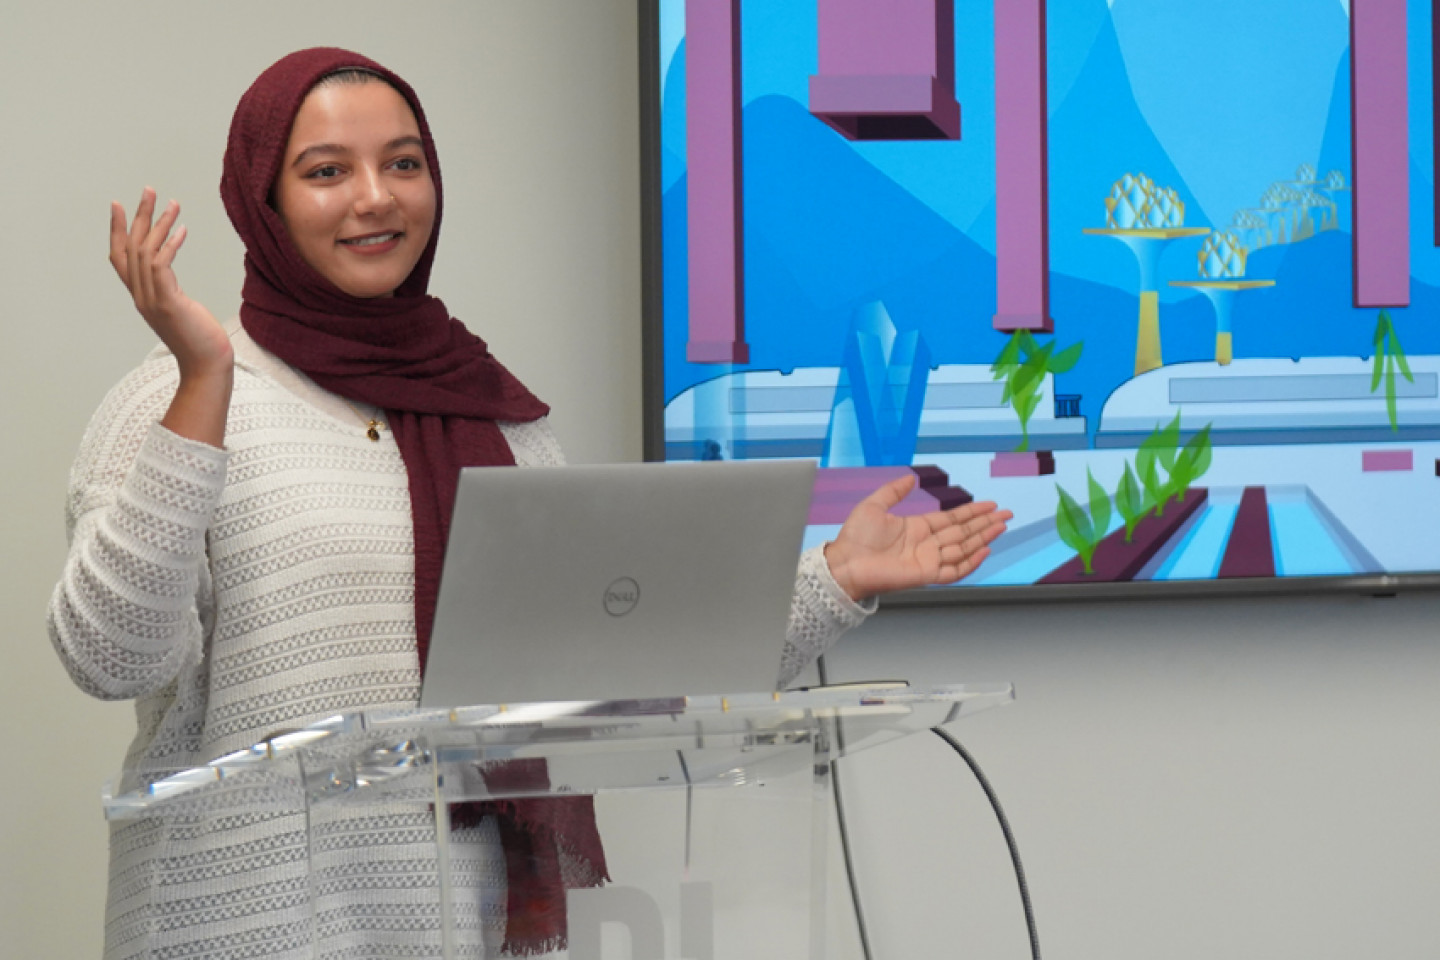 Aisha Thaj gives a presentation to her class.